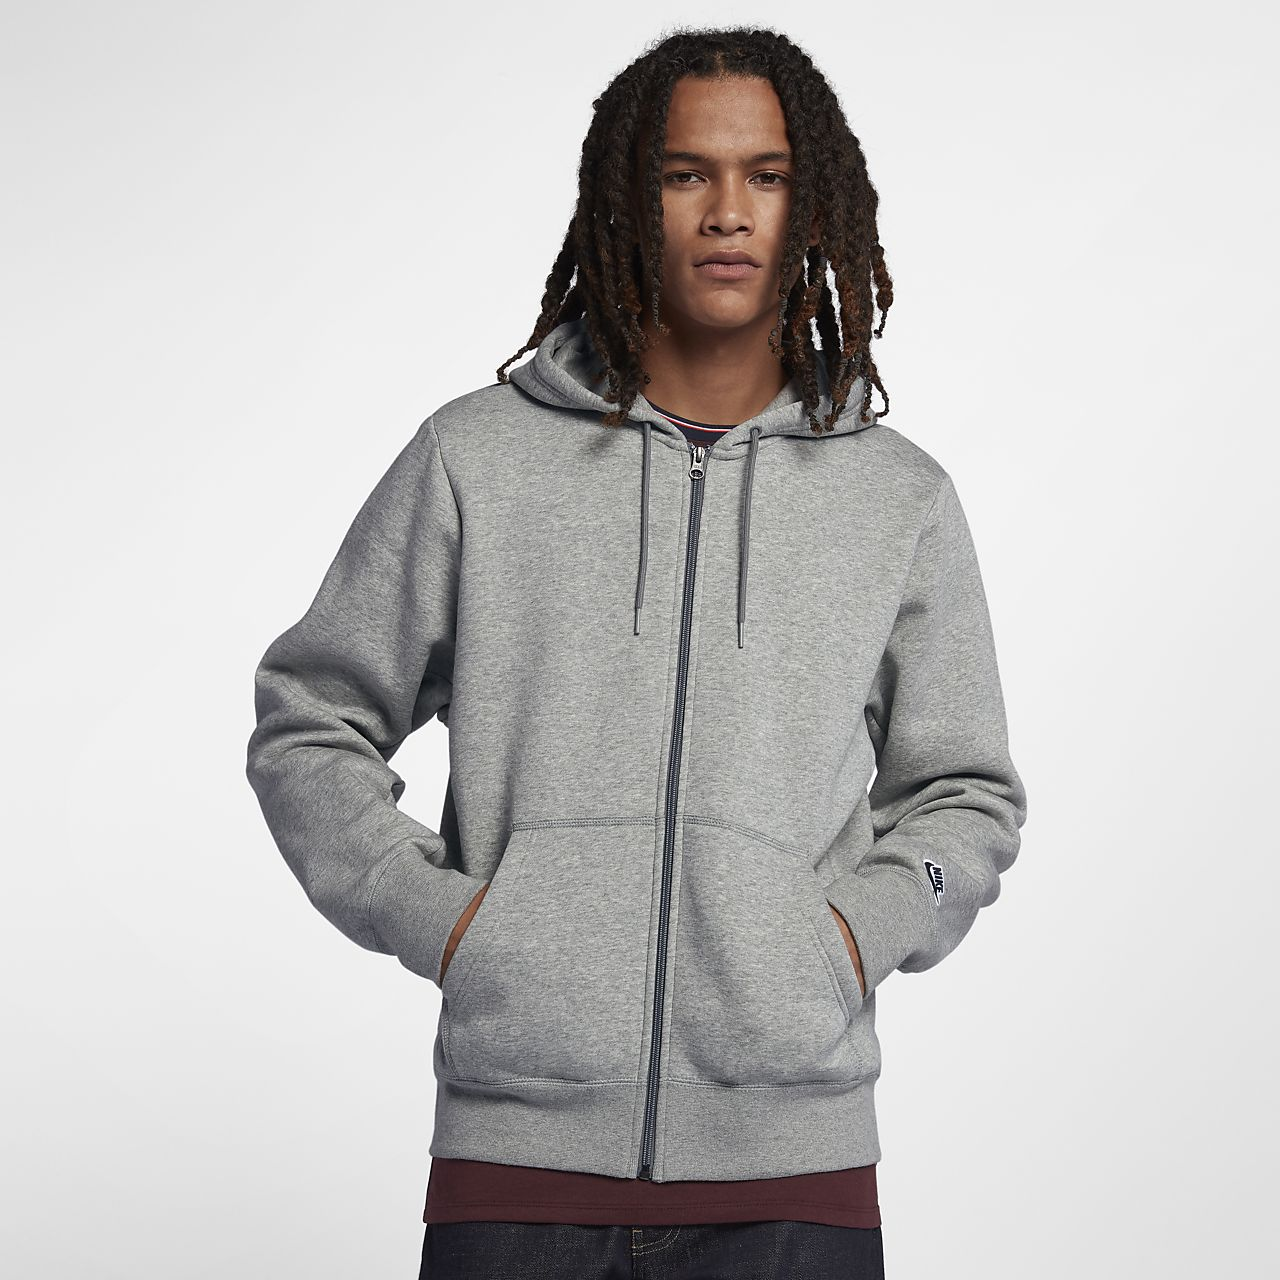 e7d60071f33c Nike SB Essential Icon Men s Full-Zip Hoodie. Nike.com GB